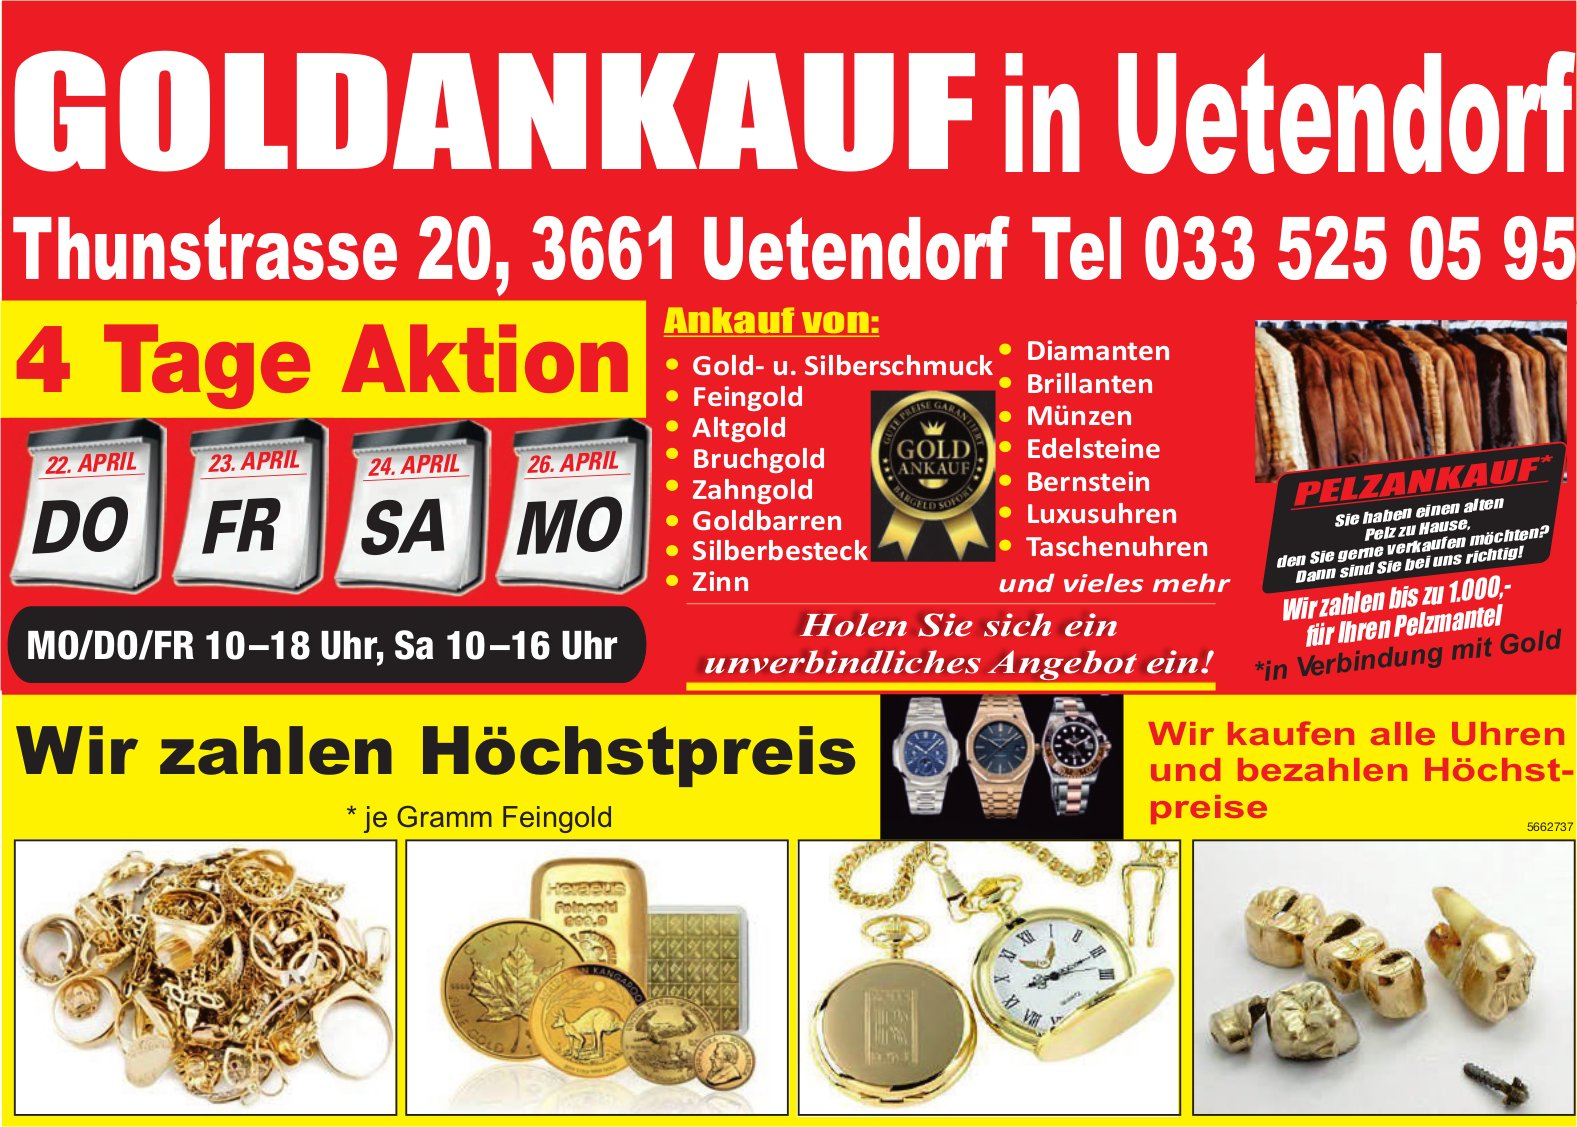 Goldankauf in Uetendorf, 22./23./24./26. April, Uetendorf